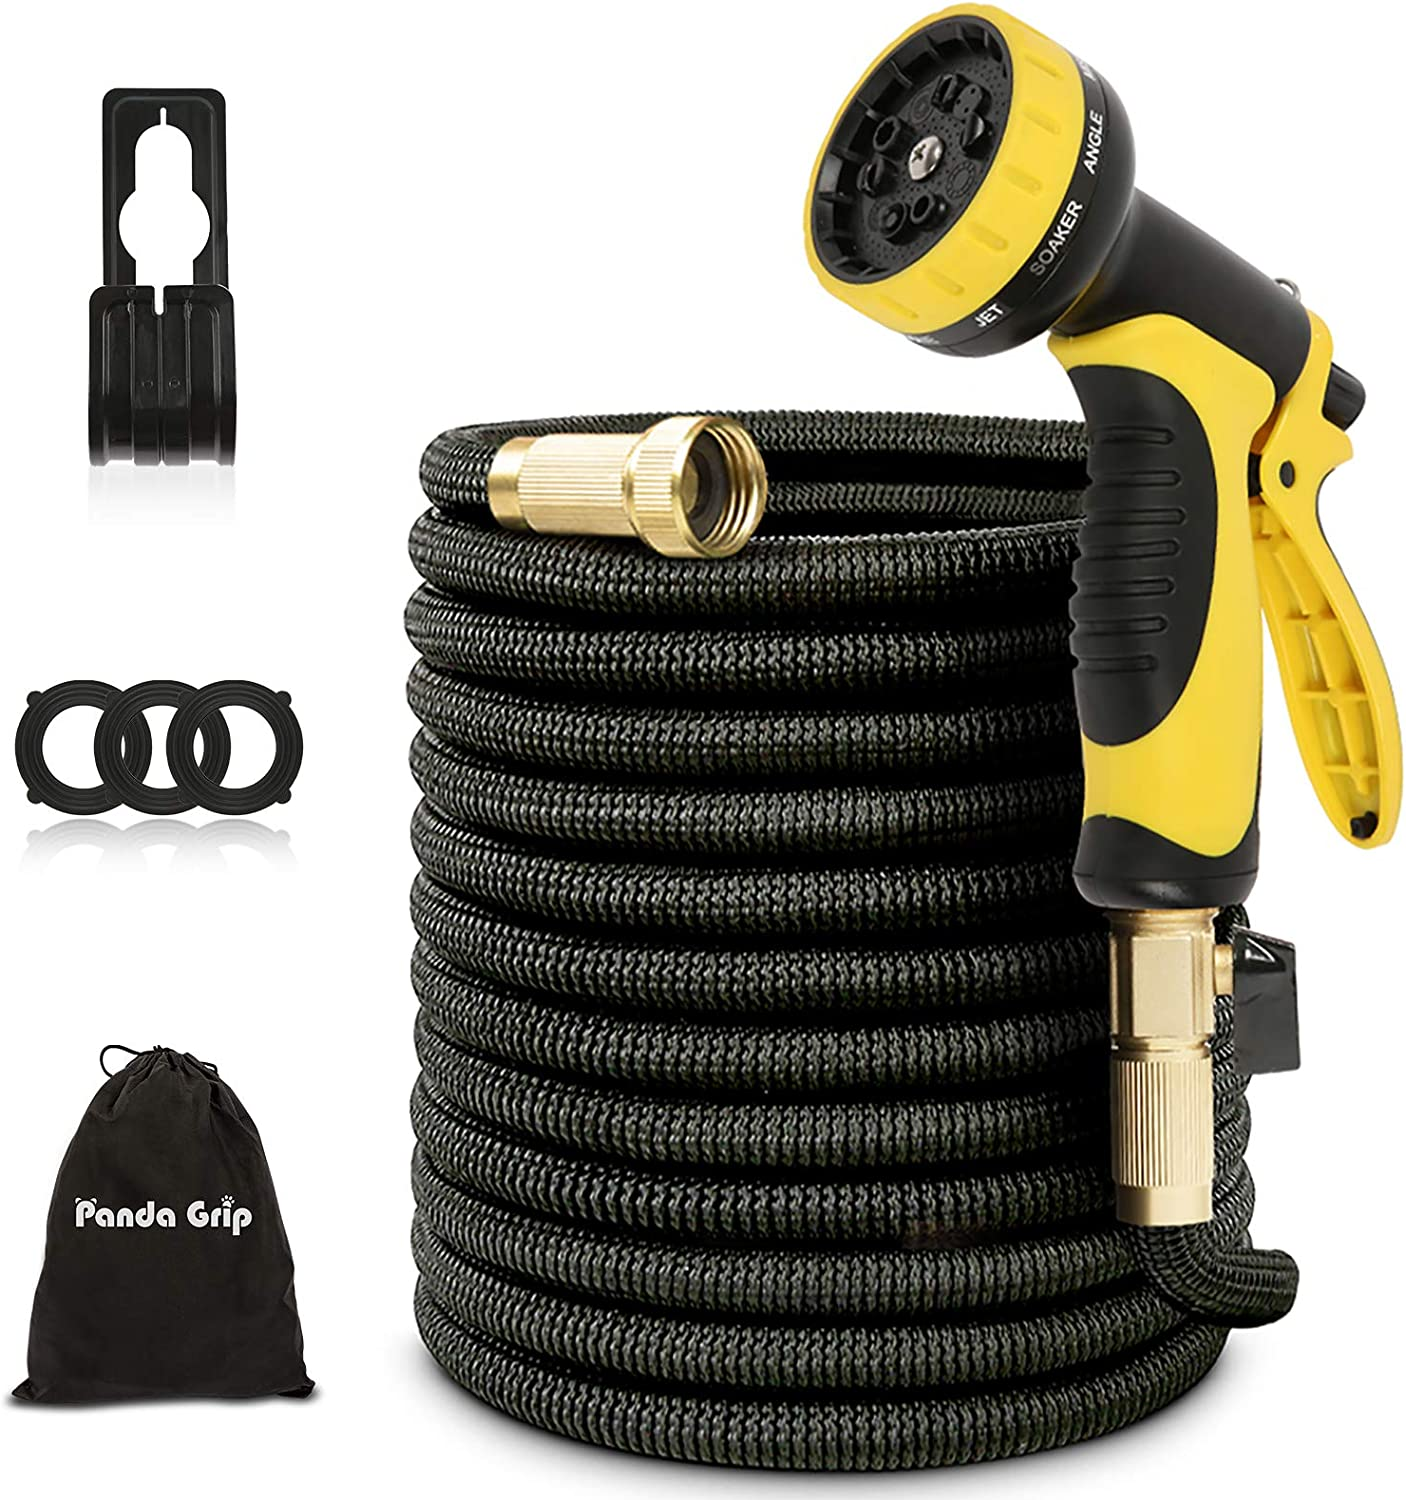 """Expandable Garden Hose 75 ft with 10 Function Spray Nozzle, 3 Times Expanding Water Hose with 3/4"""" Solid Brass Fittings for Watering Garden, Washing Car, Pet Cleaning (75ft)…"""